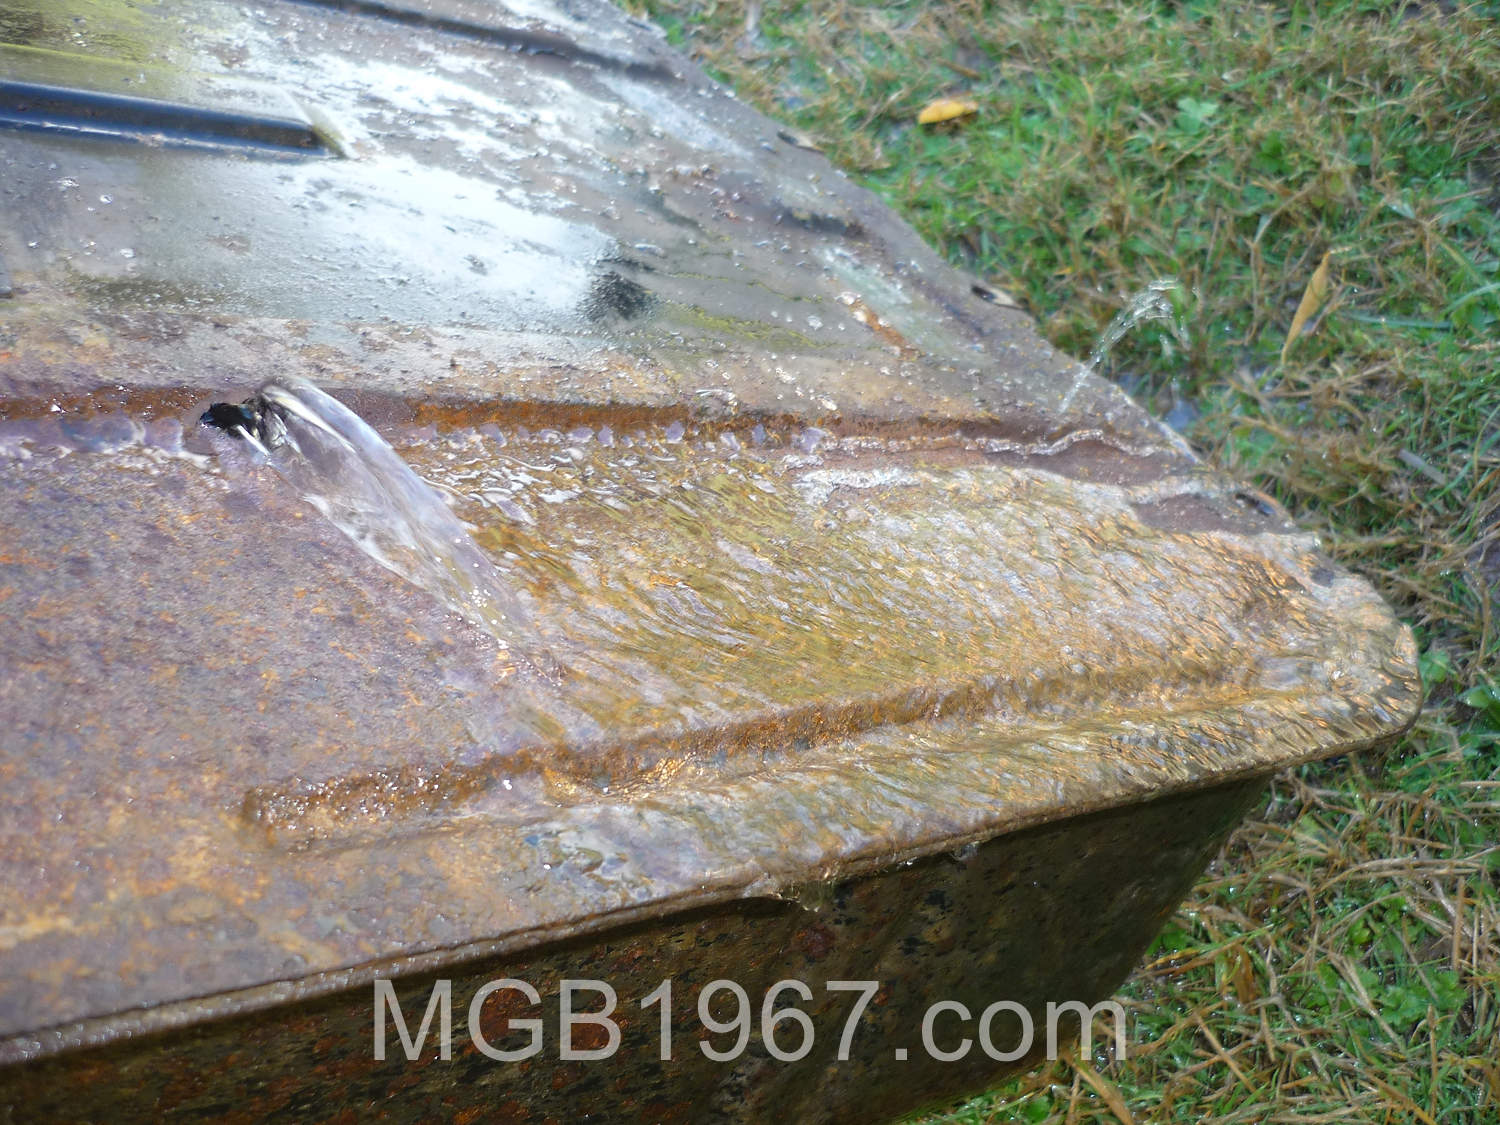 Rusted out MGB GT gas tank